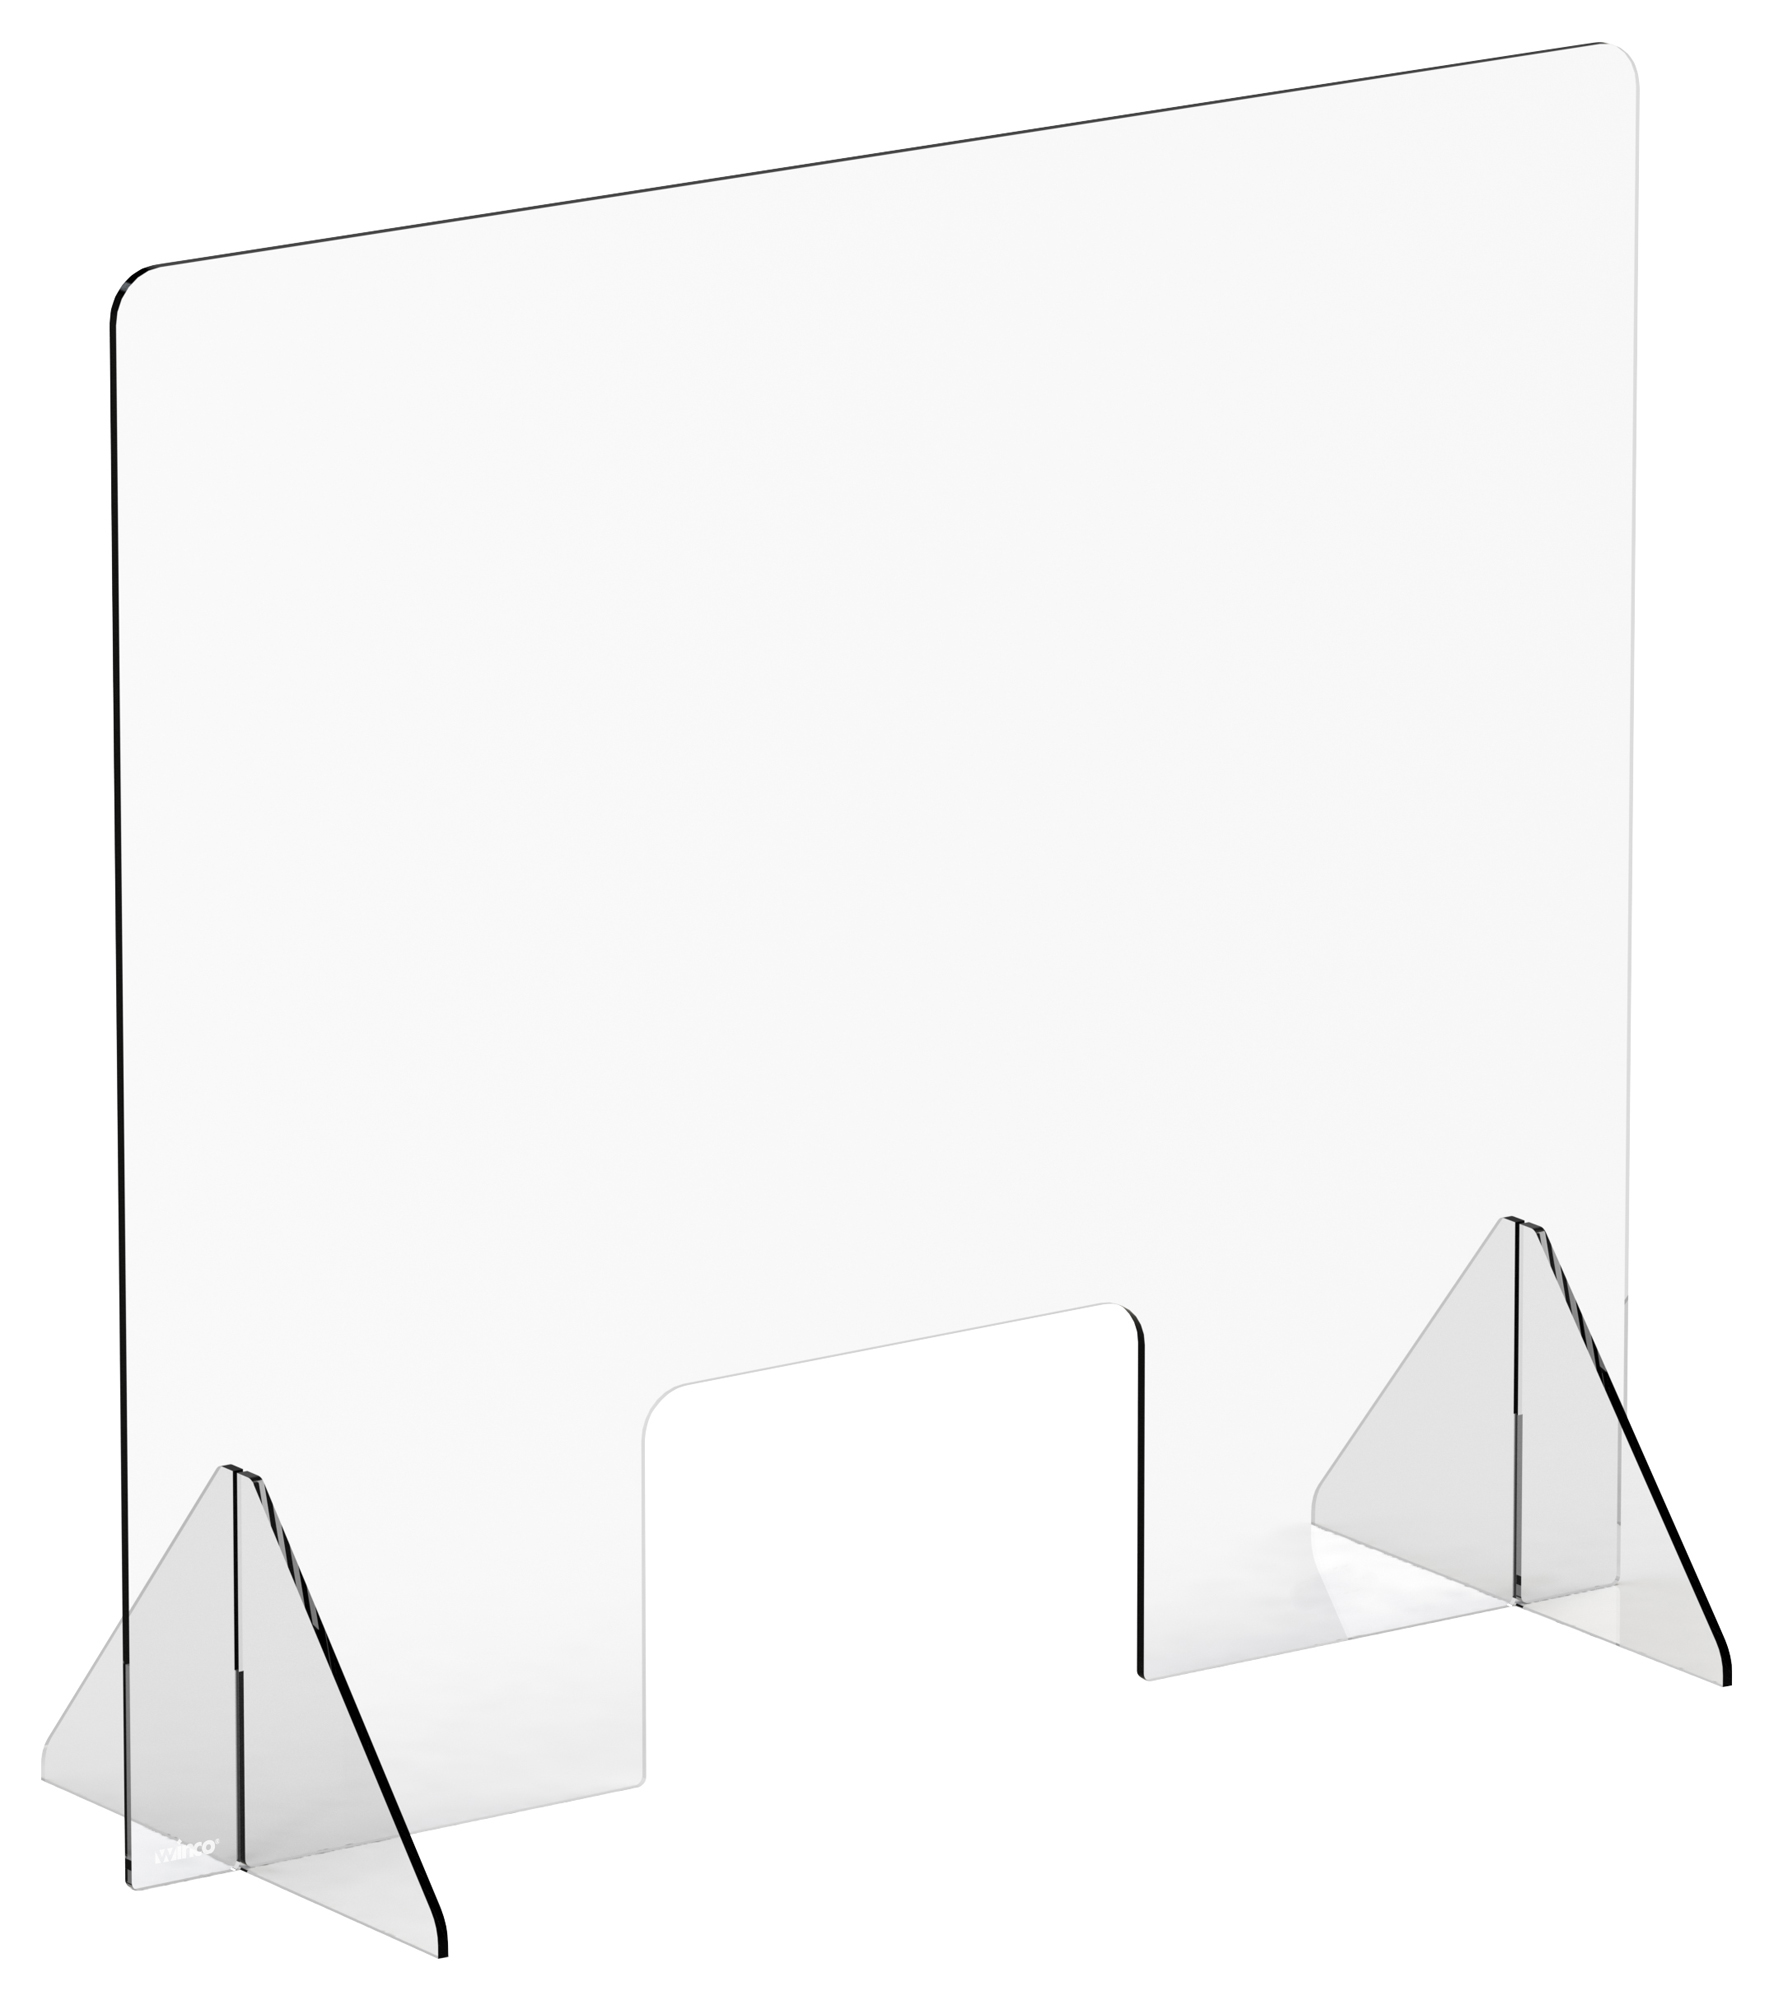 Winco ACSS-3632W clear safety shield